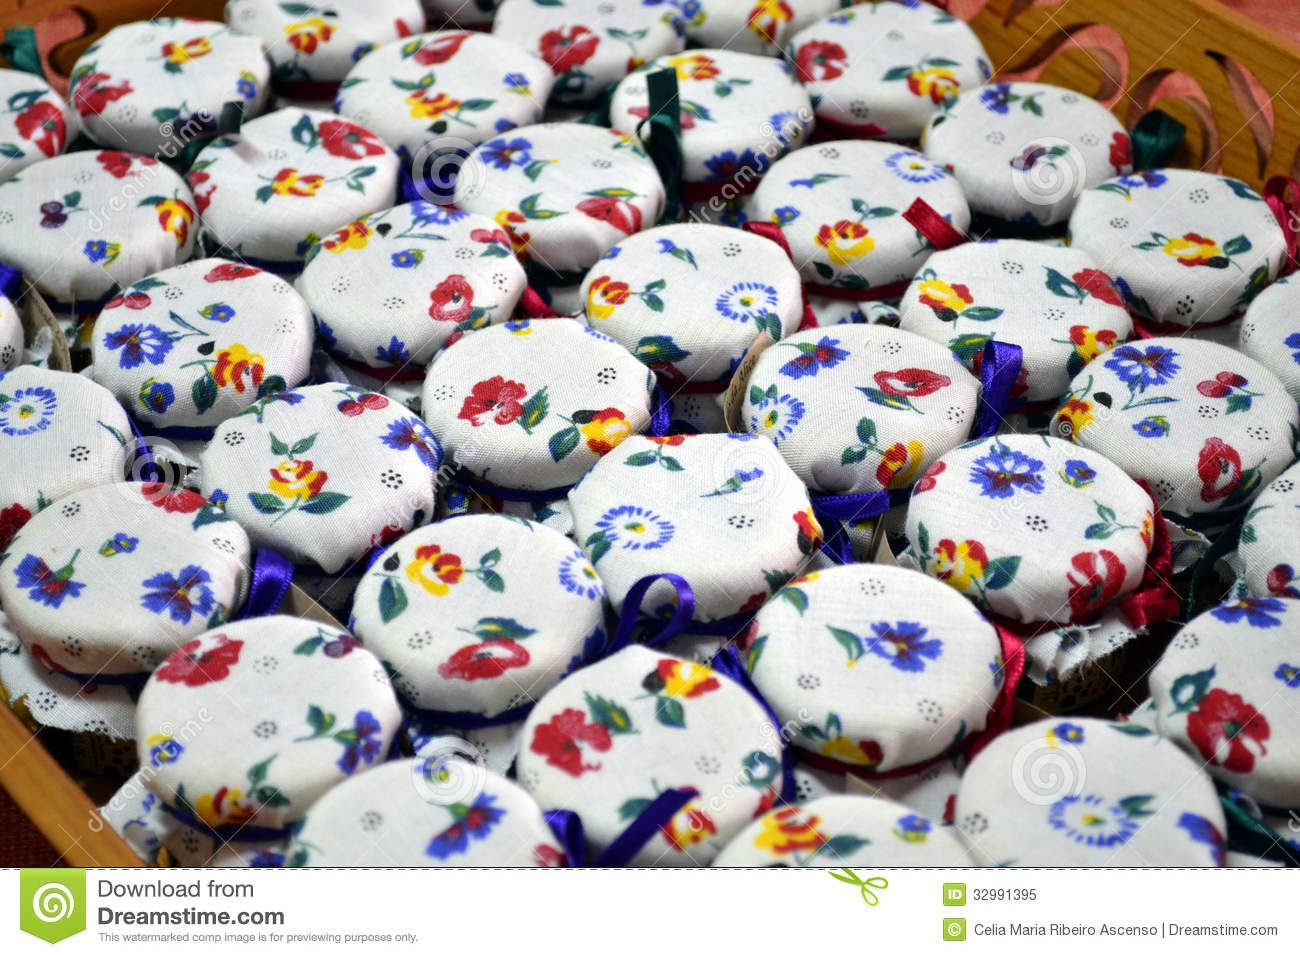 Image result for chutney jars fabric images